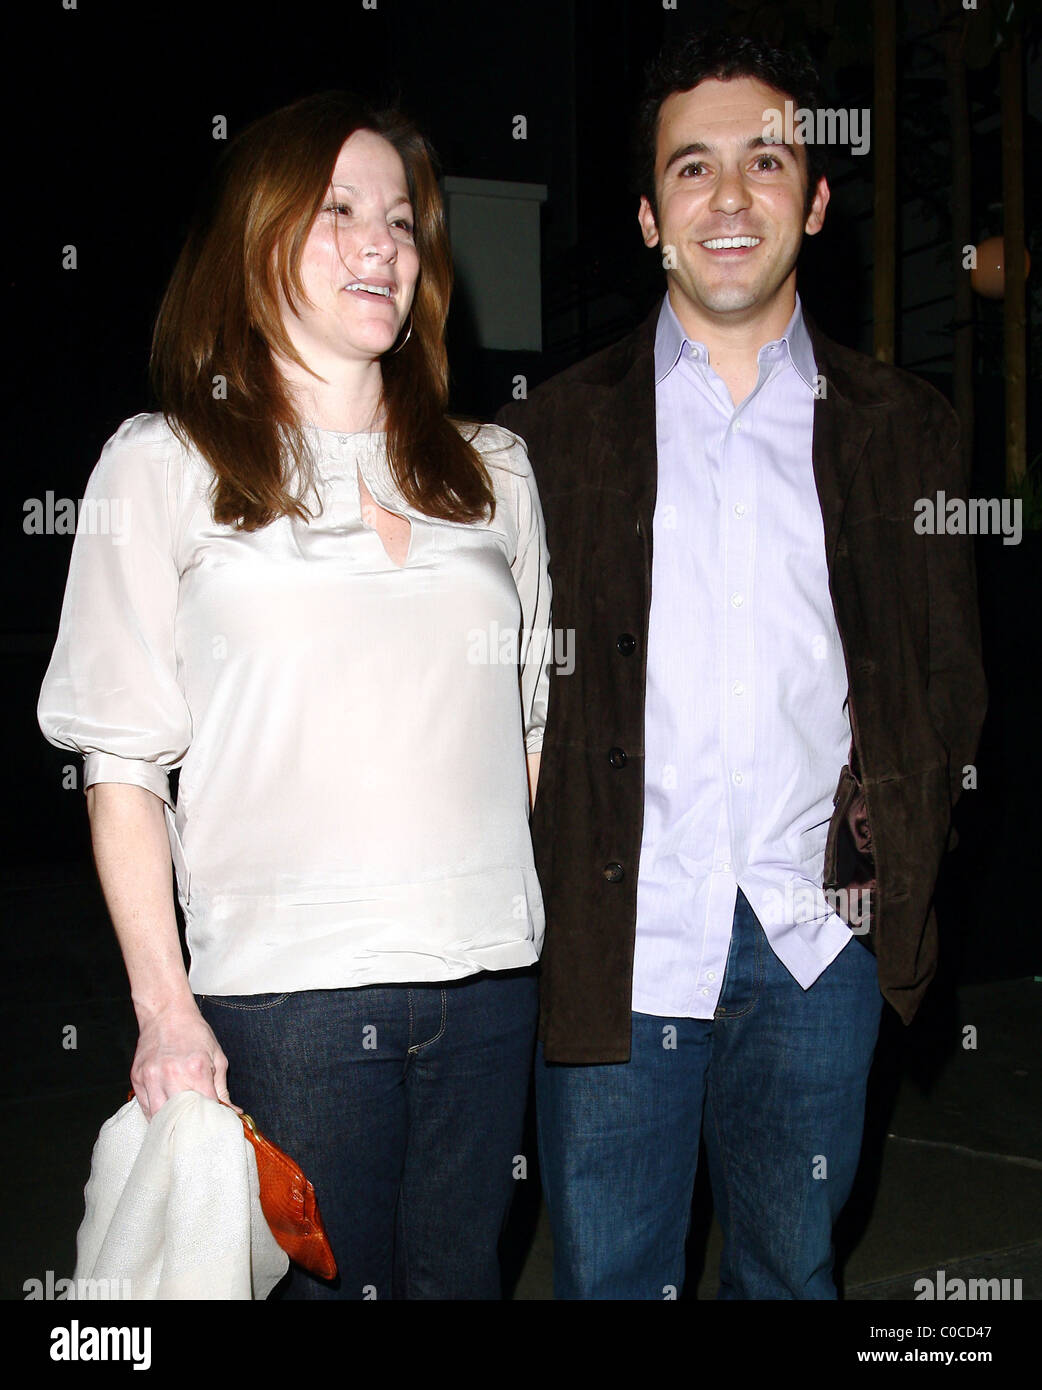 Fred Savage And Pregnant Wife Jennifer Lynn Stone Leaving Stk Stock Photo Alamy